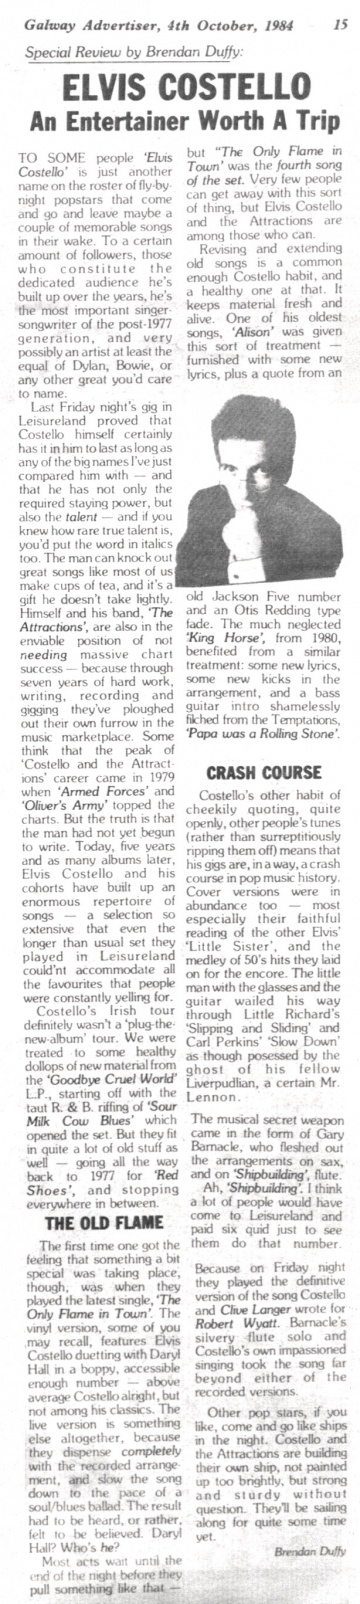 1984-10-04 Galway Advertiser page 15 clipping.jpg